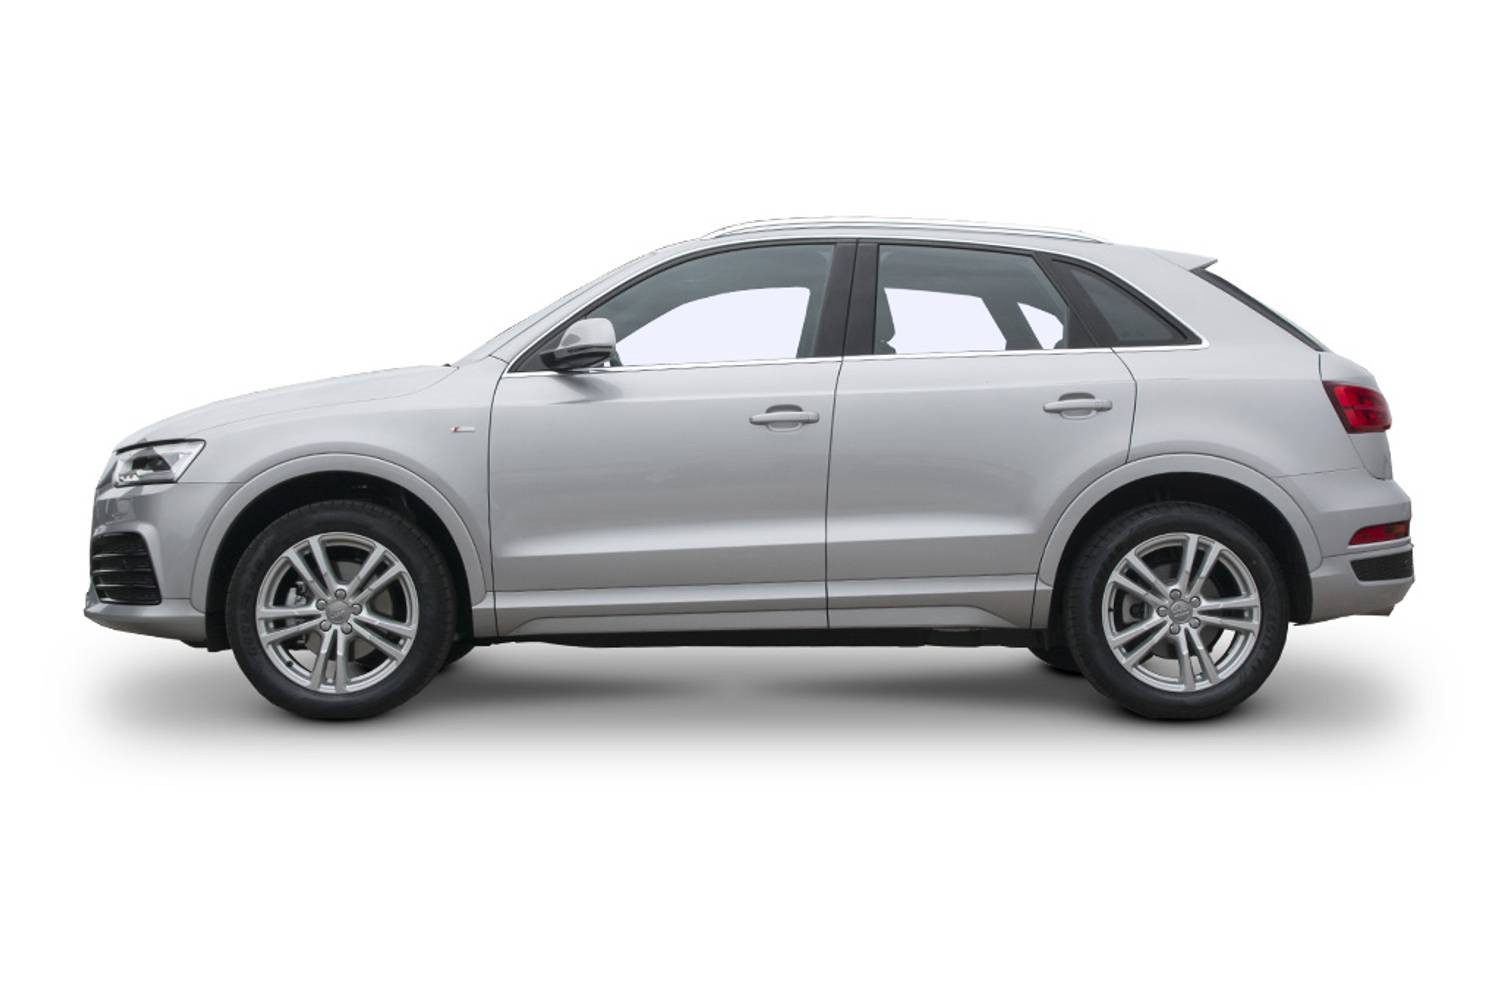 new audi q3 estate special editions 1 4t fsi s line edition 5 door s tronic 2016 for sale. Black Bedroom Furniture Sets. Home Design Ideas